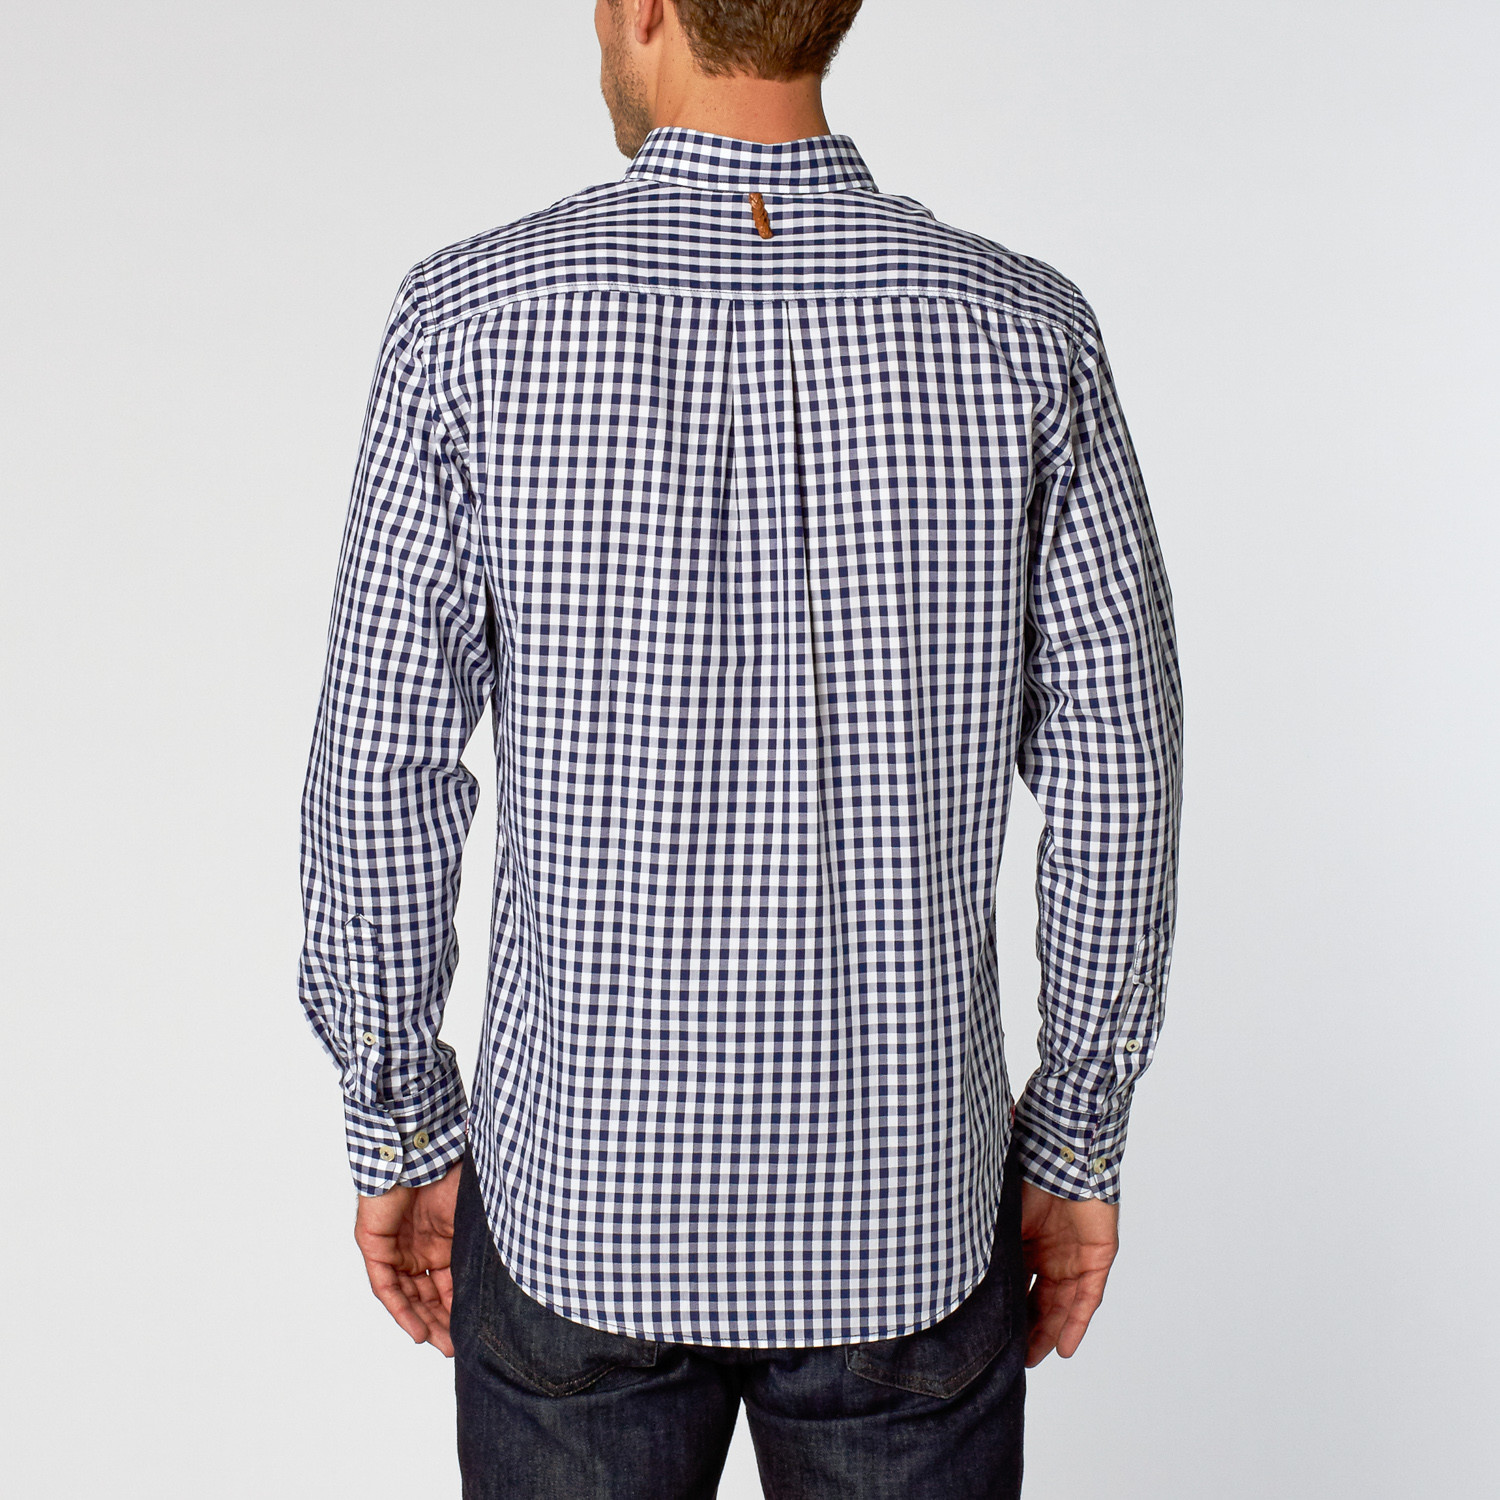 Newton Dress Shirt Navy Gingham S You Shirt Touch